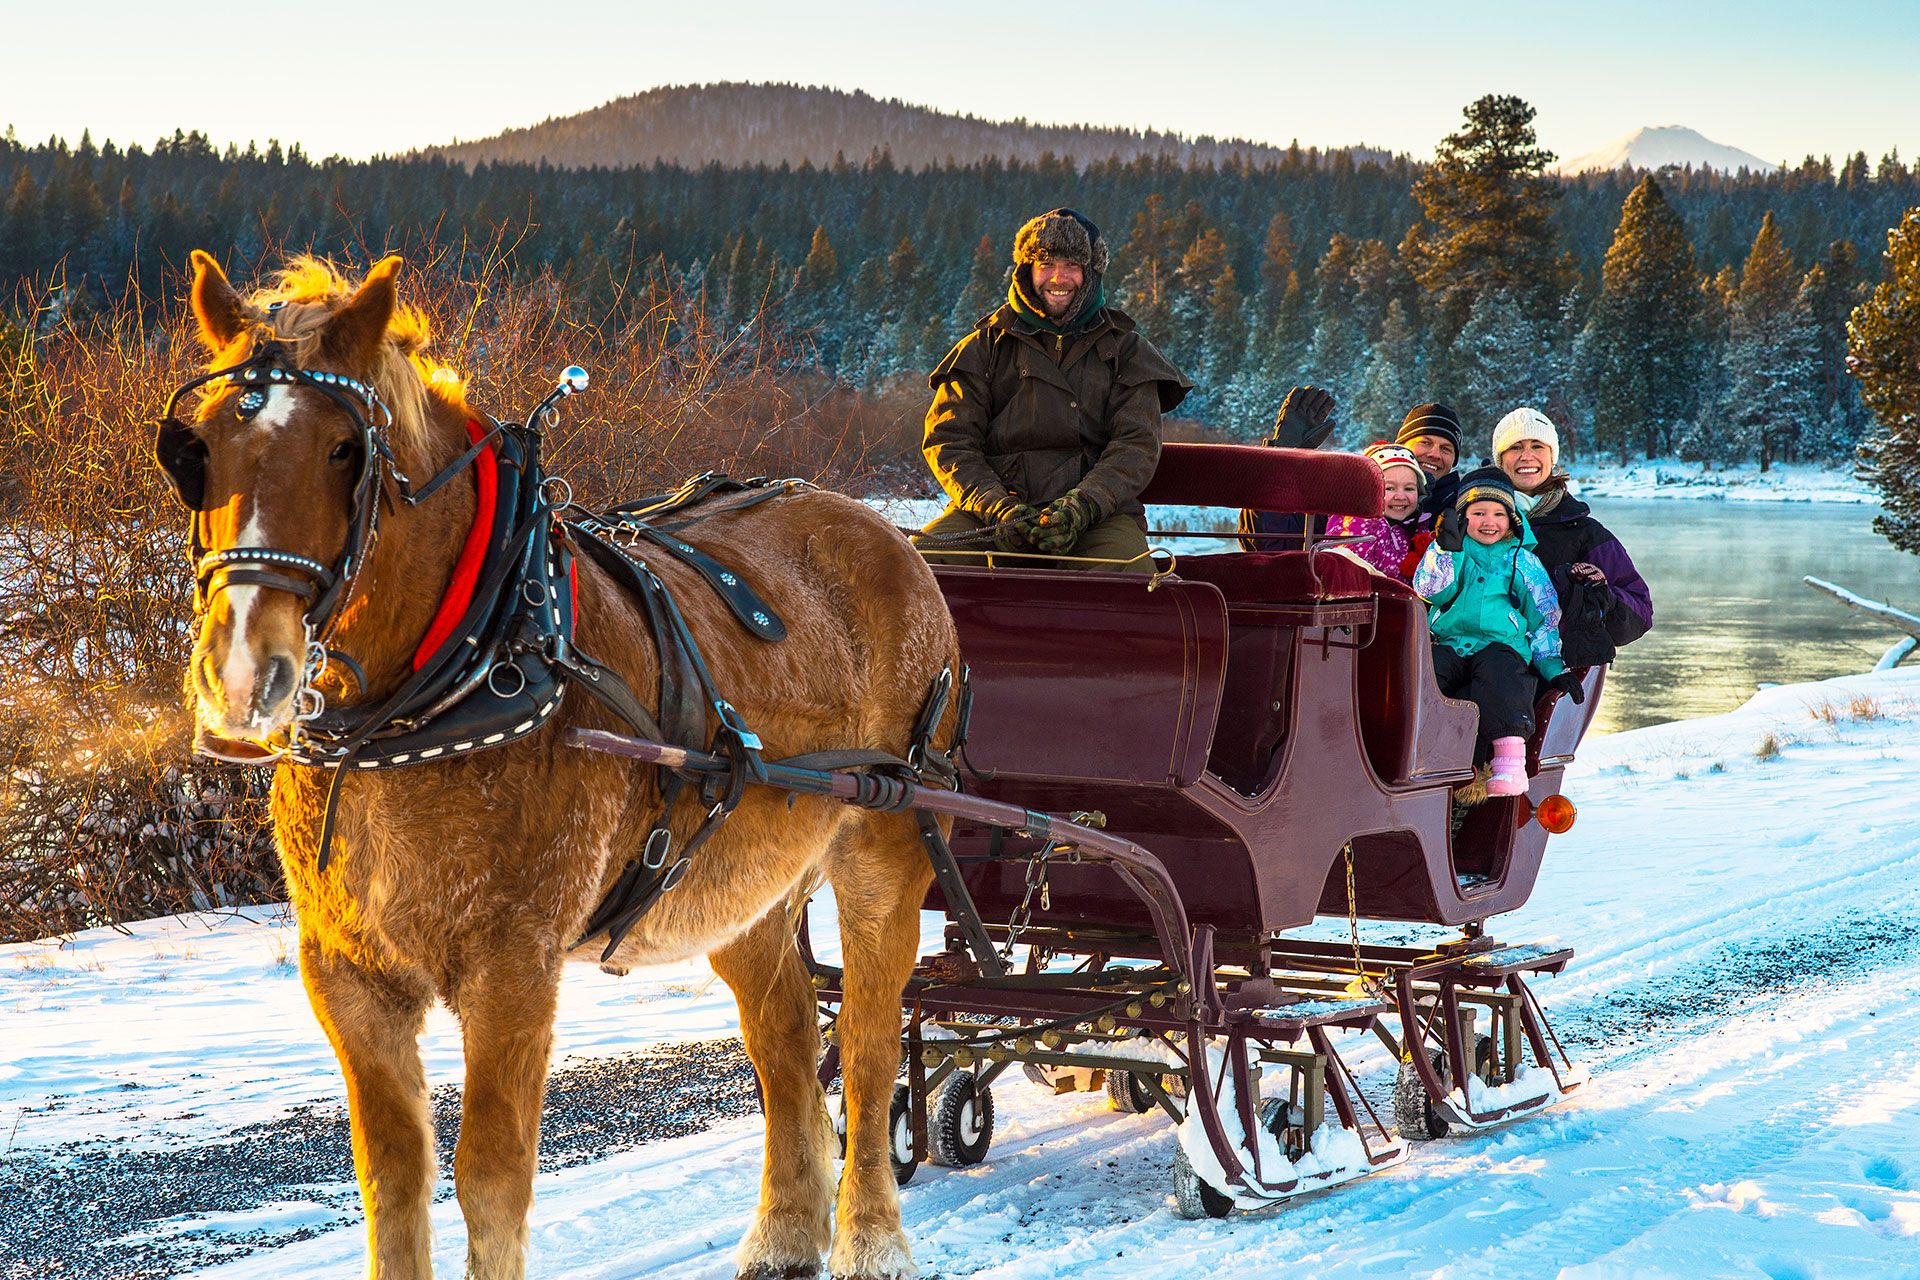 Horsedrawn Sleigh Ride; Courtesy of Sunriver Resort